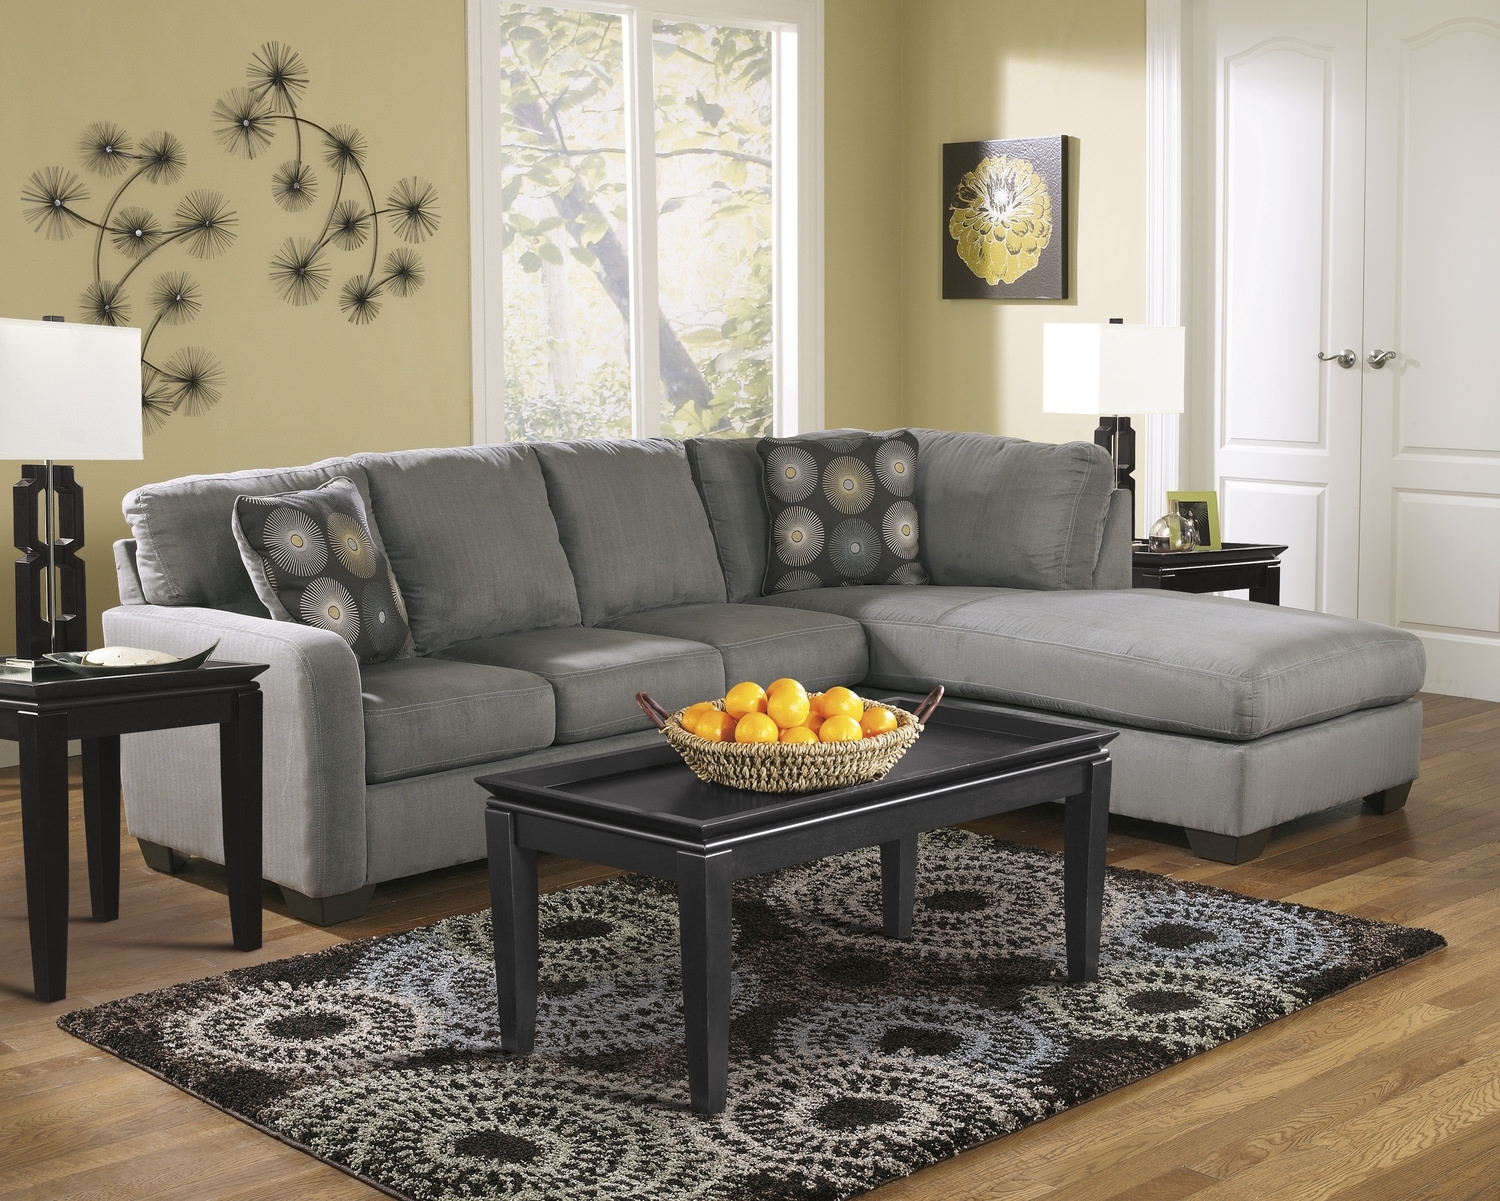 Zella 2 Piece Modular Sectional | Dock86 With Regard To Dock 86 Sectional Sofas (Photo 4 of 10)